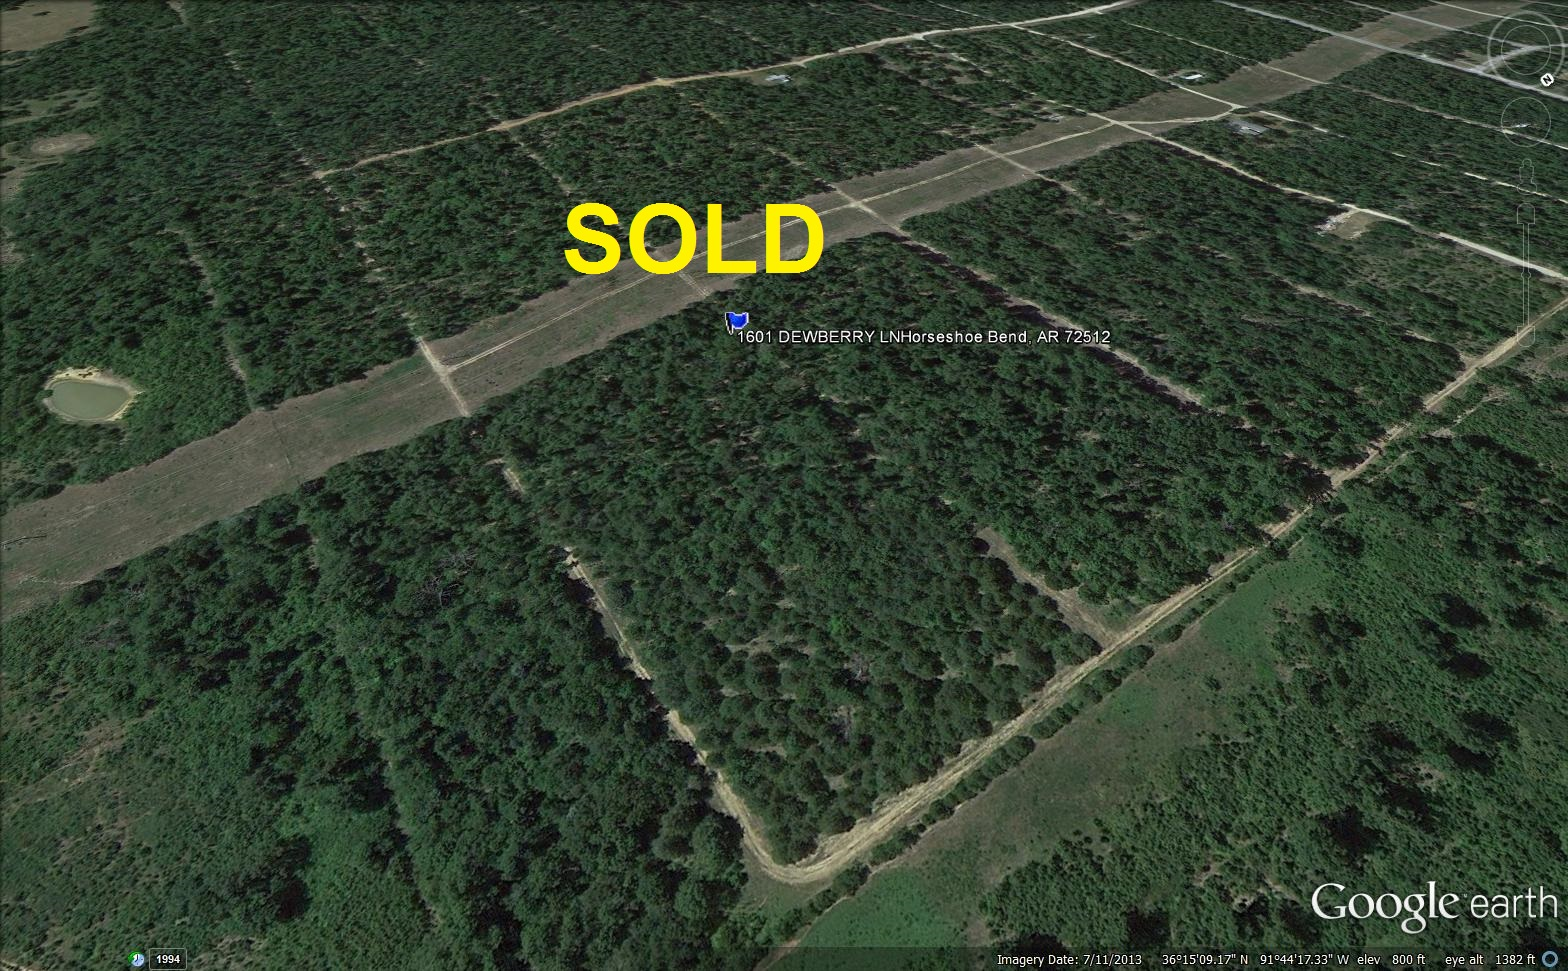 Vacation or Retirement Land for sale by owner in Horseshoe Bend Arkansas